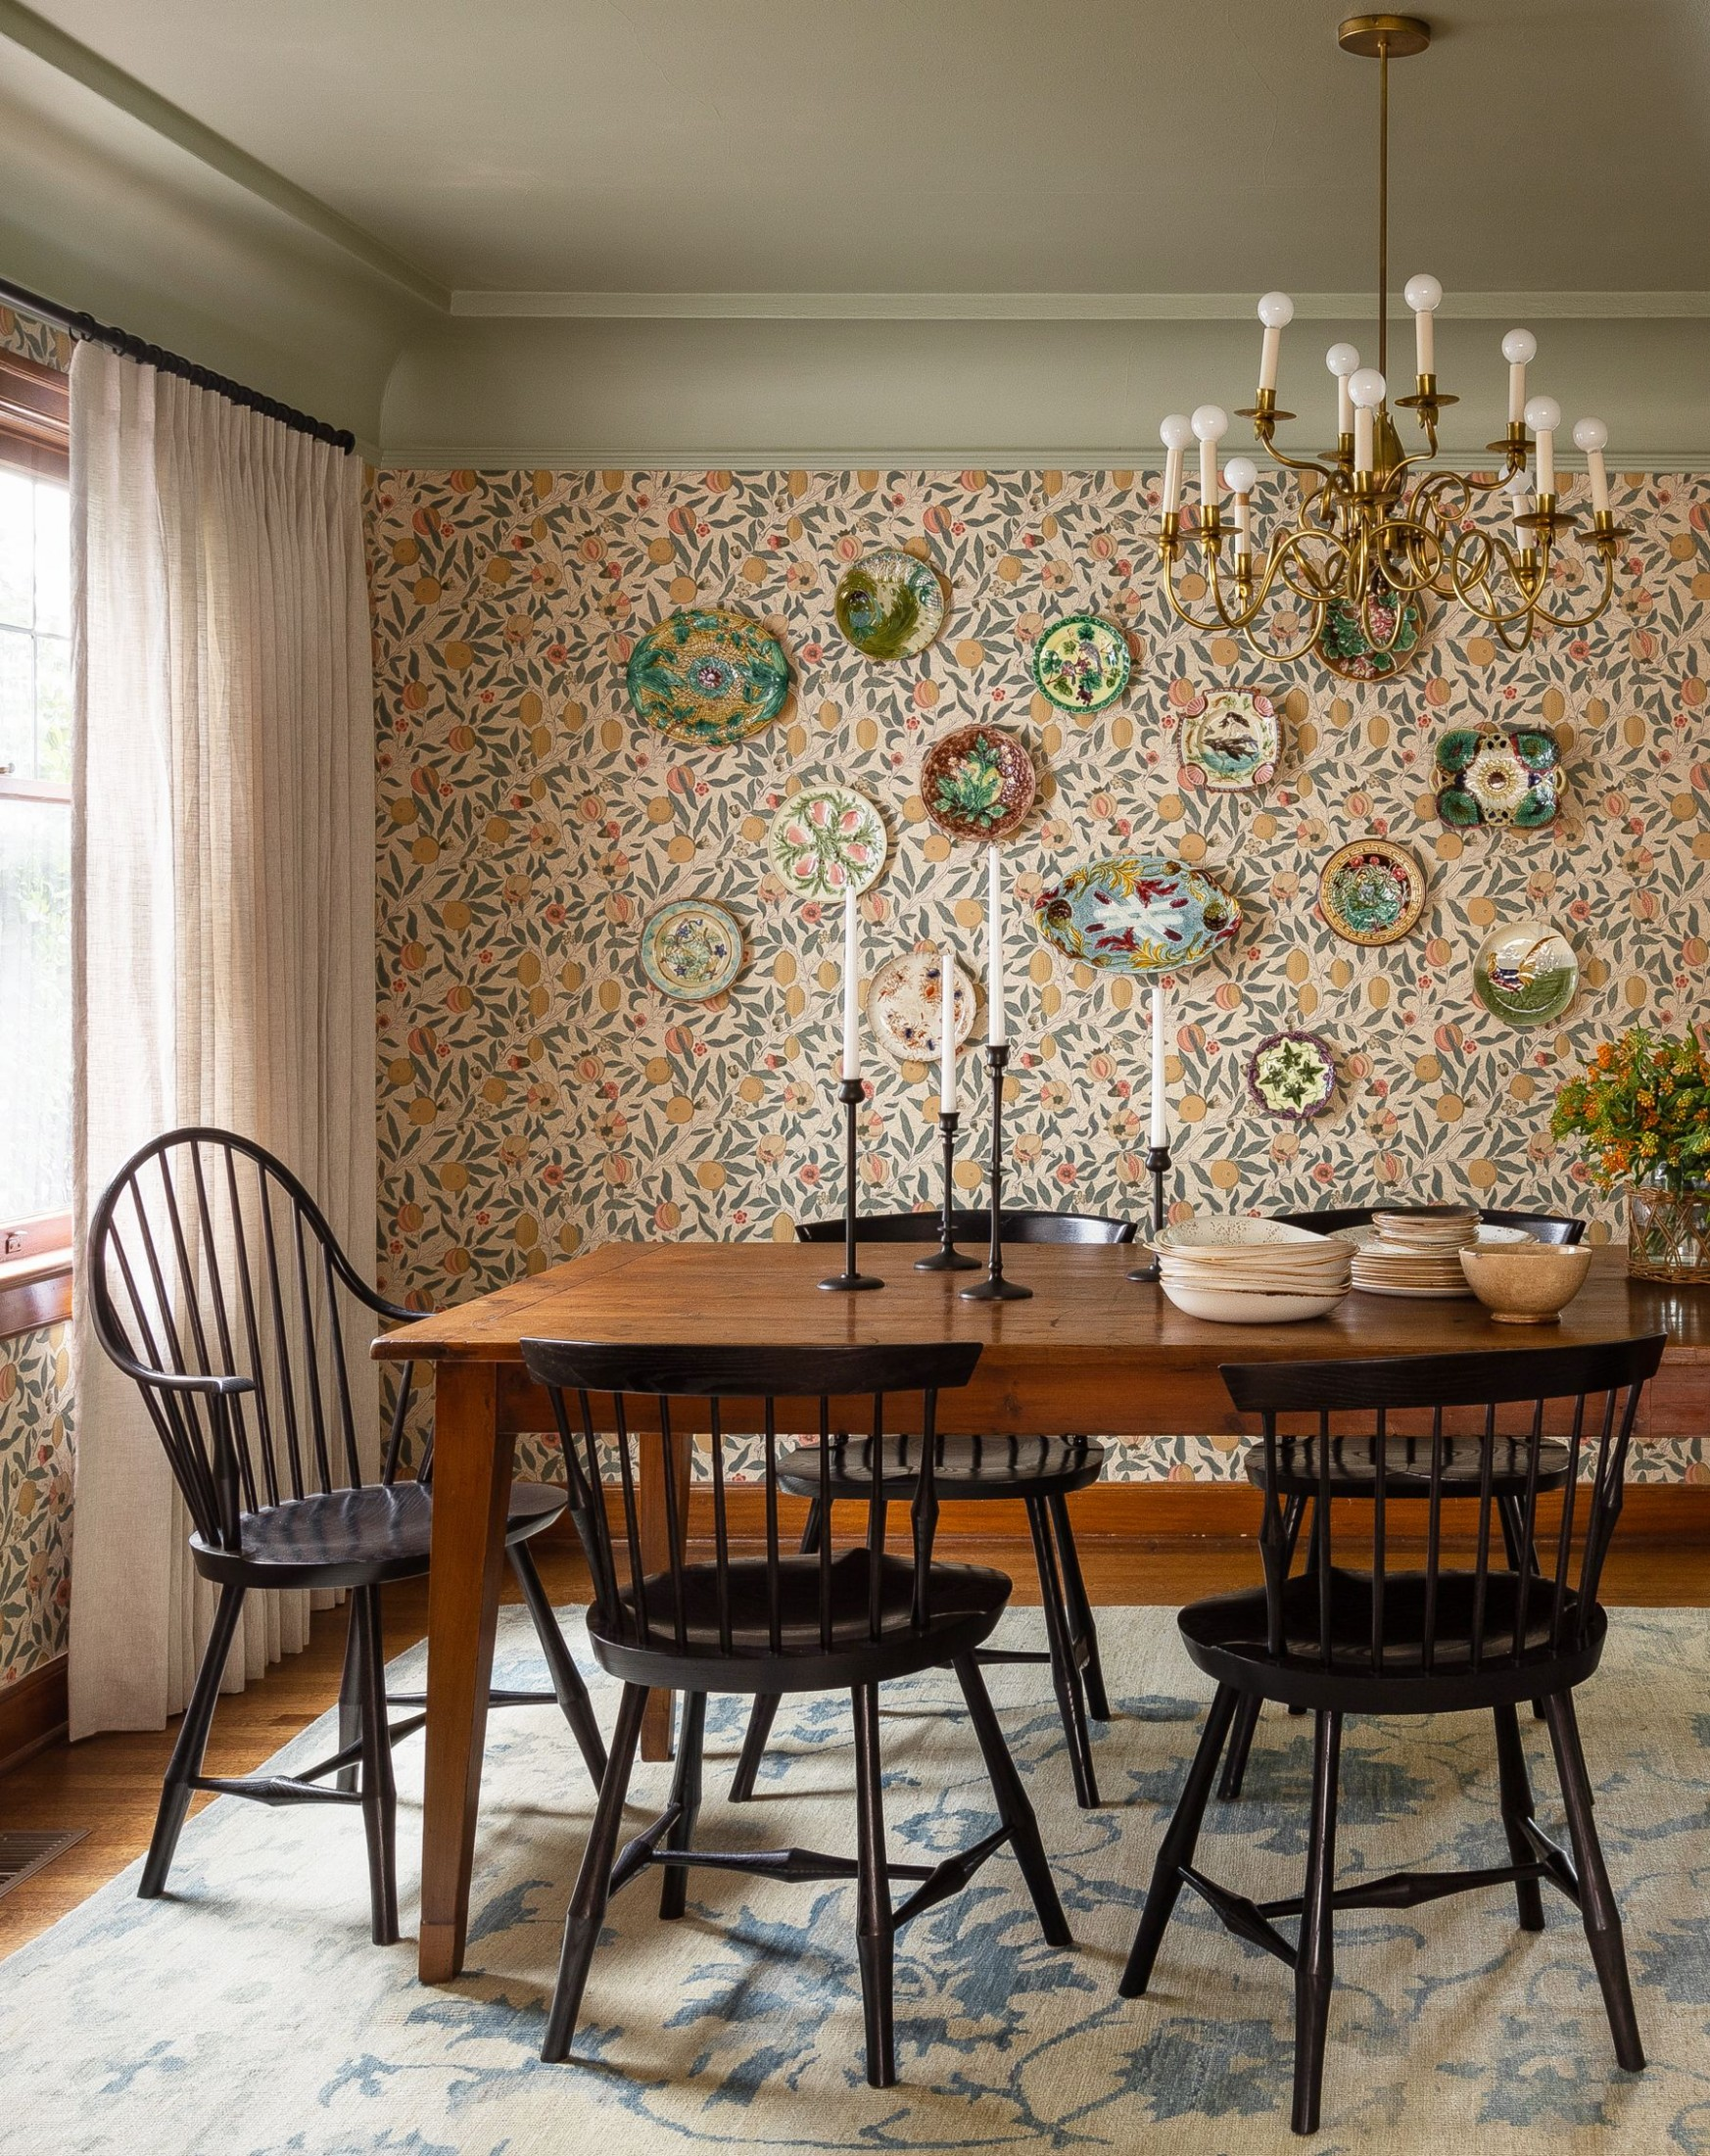 10 Best Dining Room Decorating Ideas, Furniture, Designs, and Pictures - Dining Room Ideas Oak Table